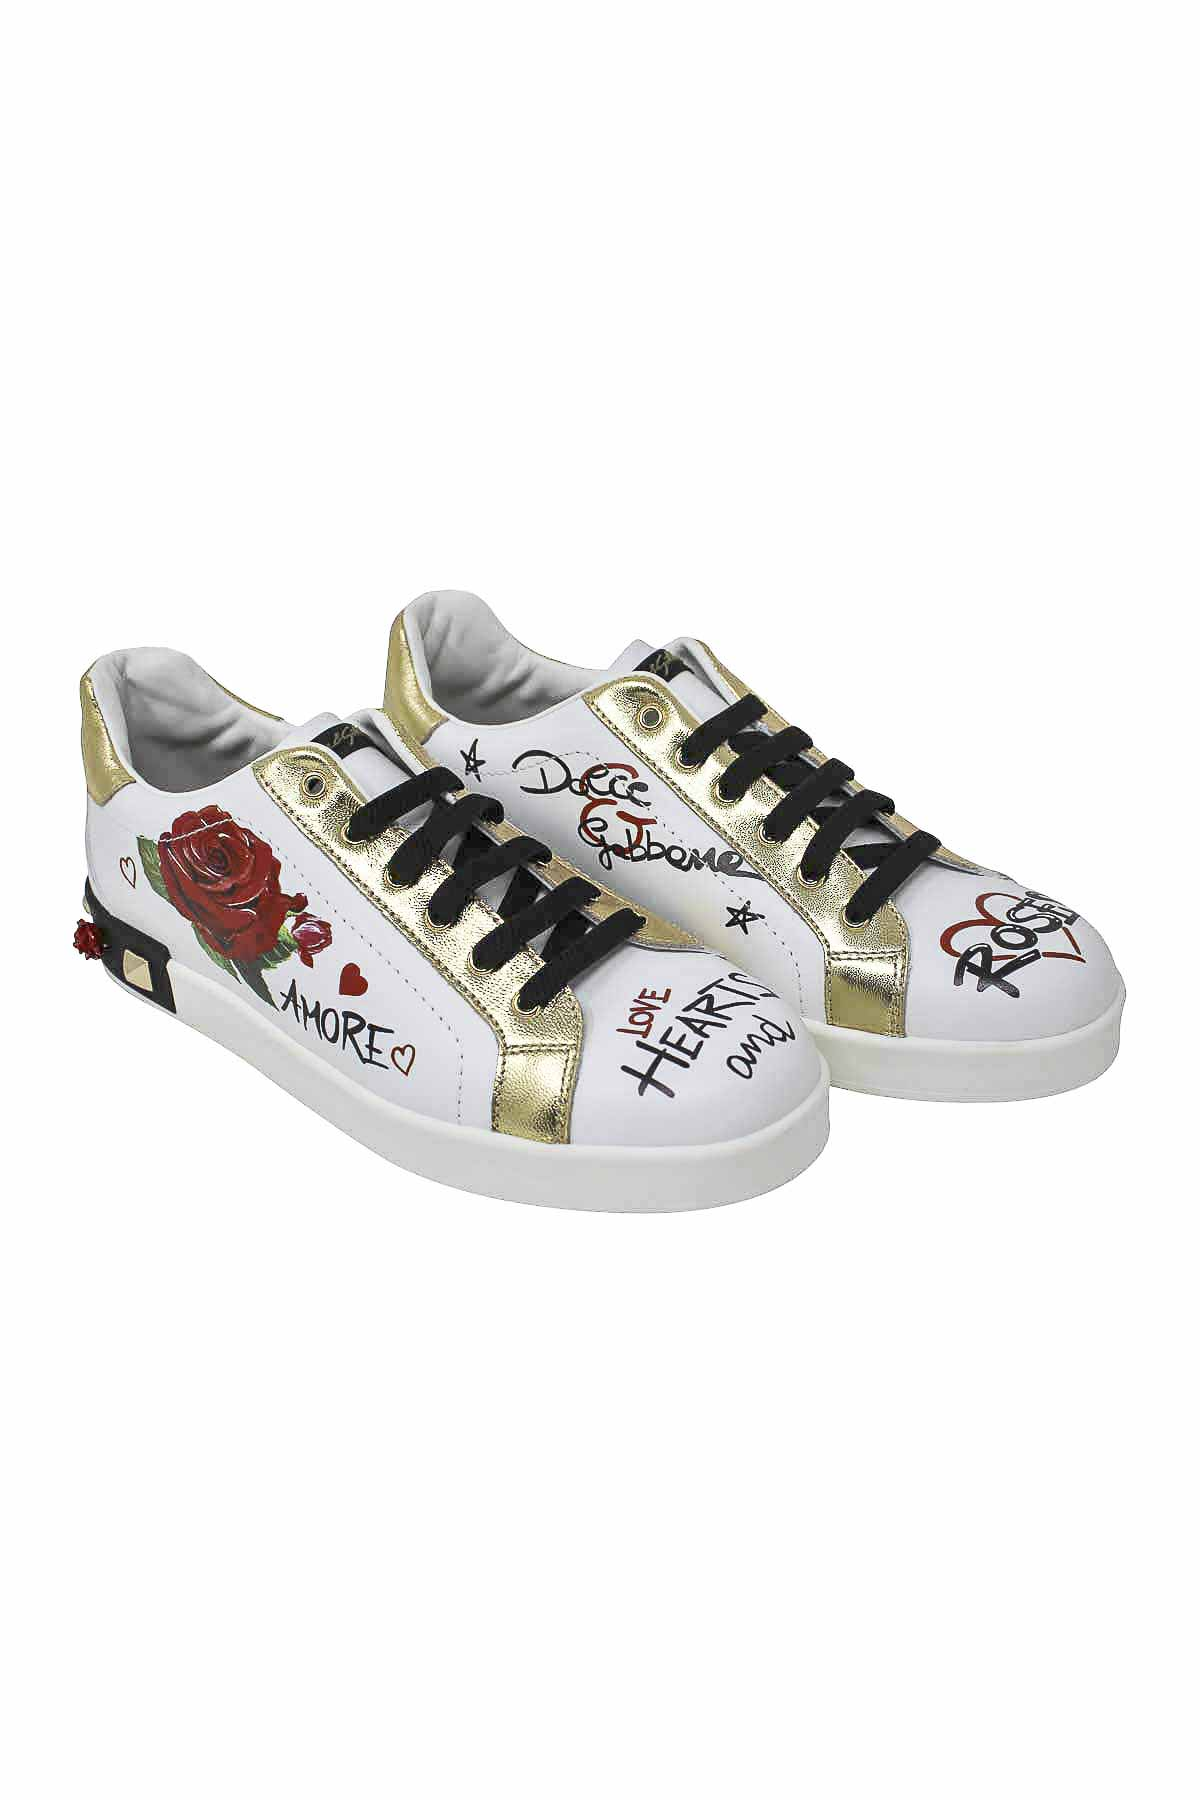 70b38ea15 ... WHITE SNEAKERS WITH GOLD DETAILS DOLCE E GABBANA KIDS Dolce & Gabbana  kids | 12 ...